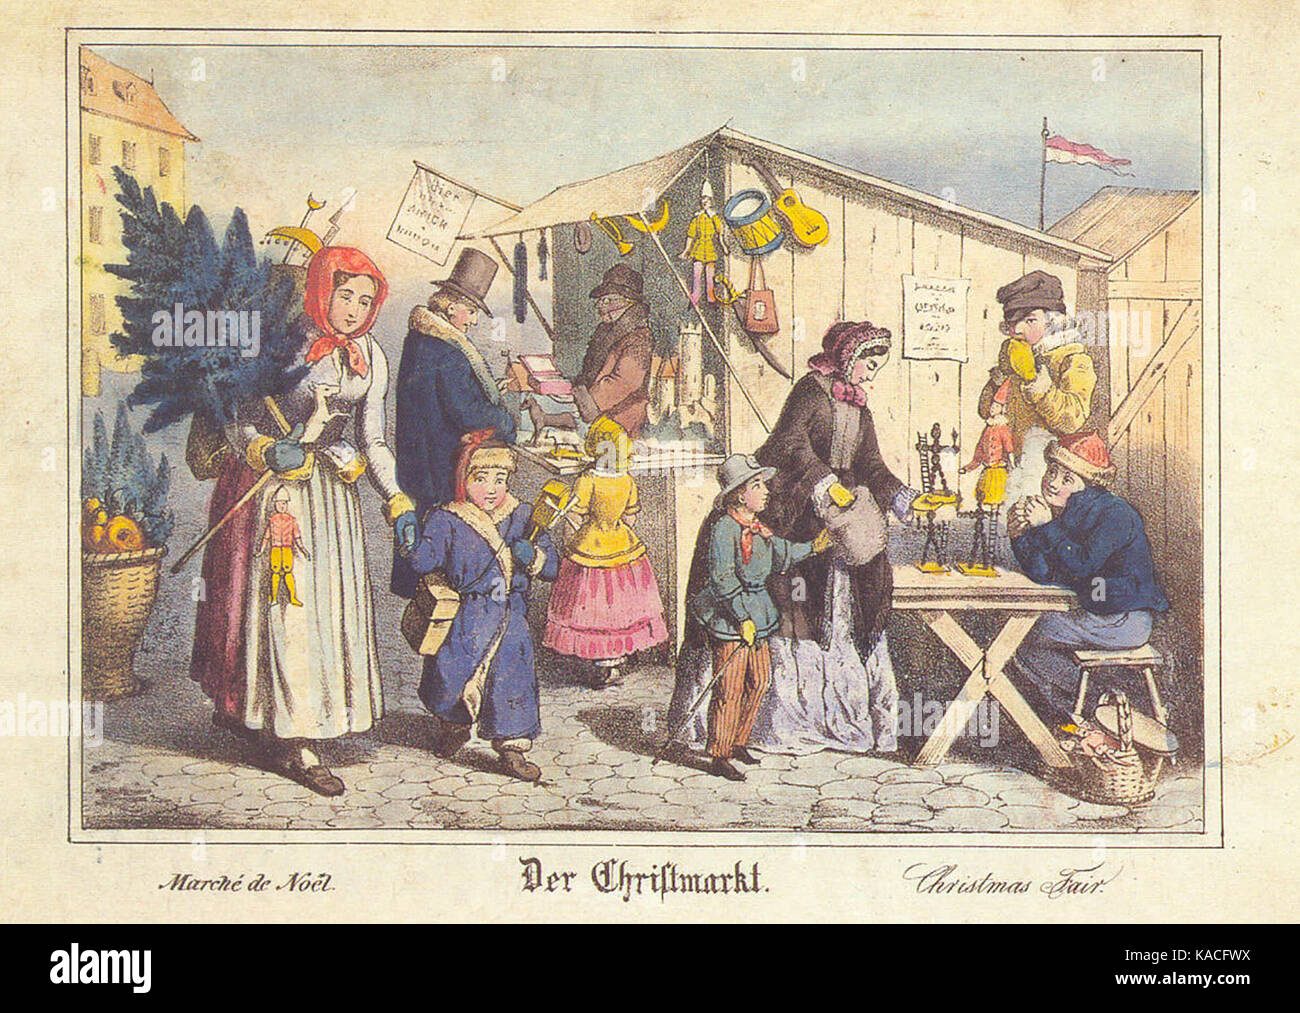 Christmas Market in Nürnberg, lithography from the 19th century. - Stock Image